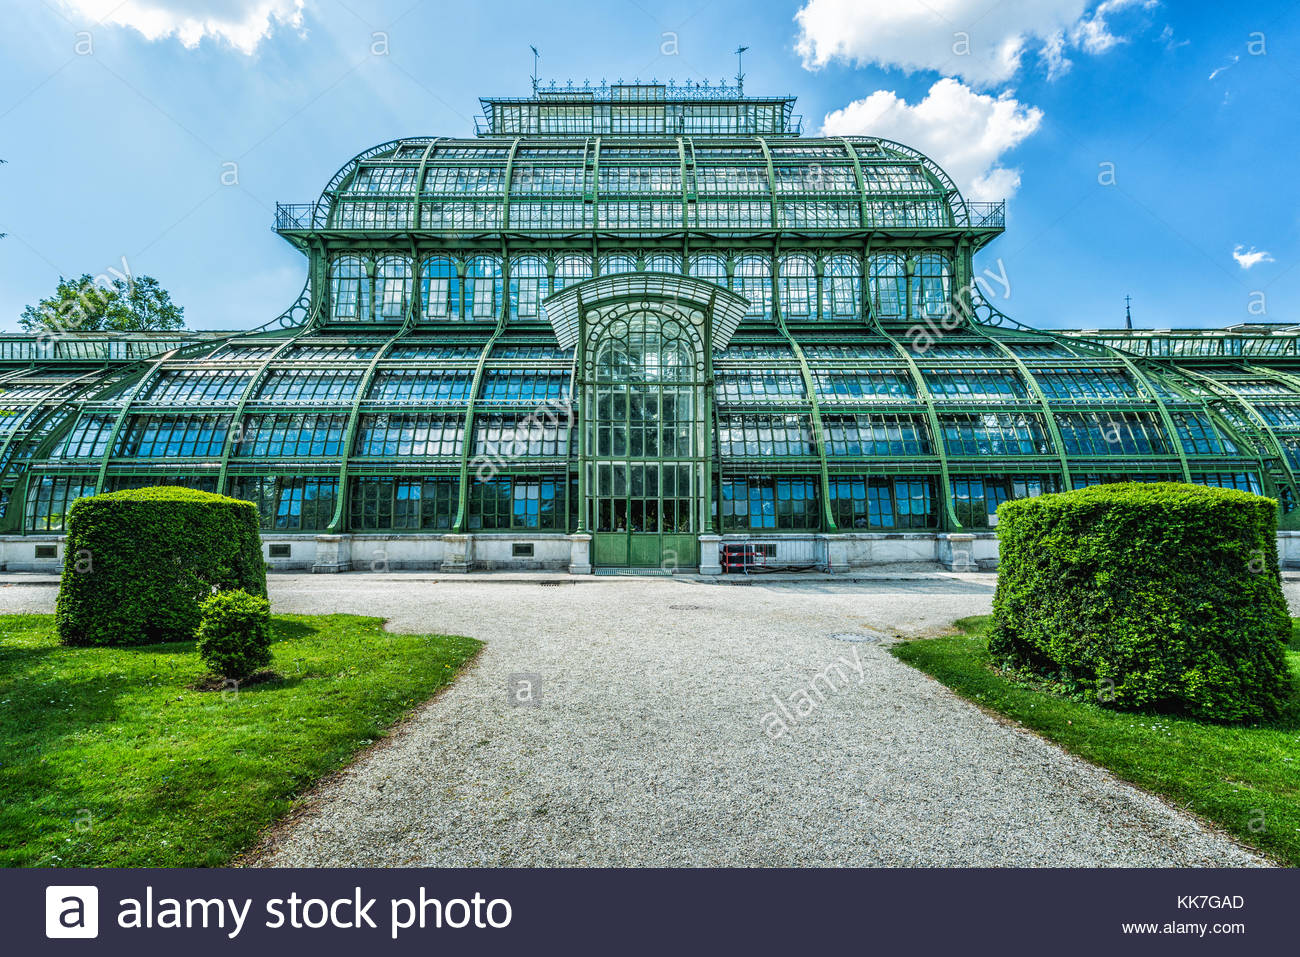 Palmhouse in the baroquese garden of the Palace of Schönbrunn - Stock Image